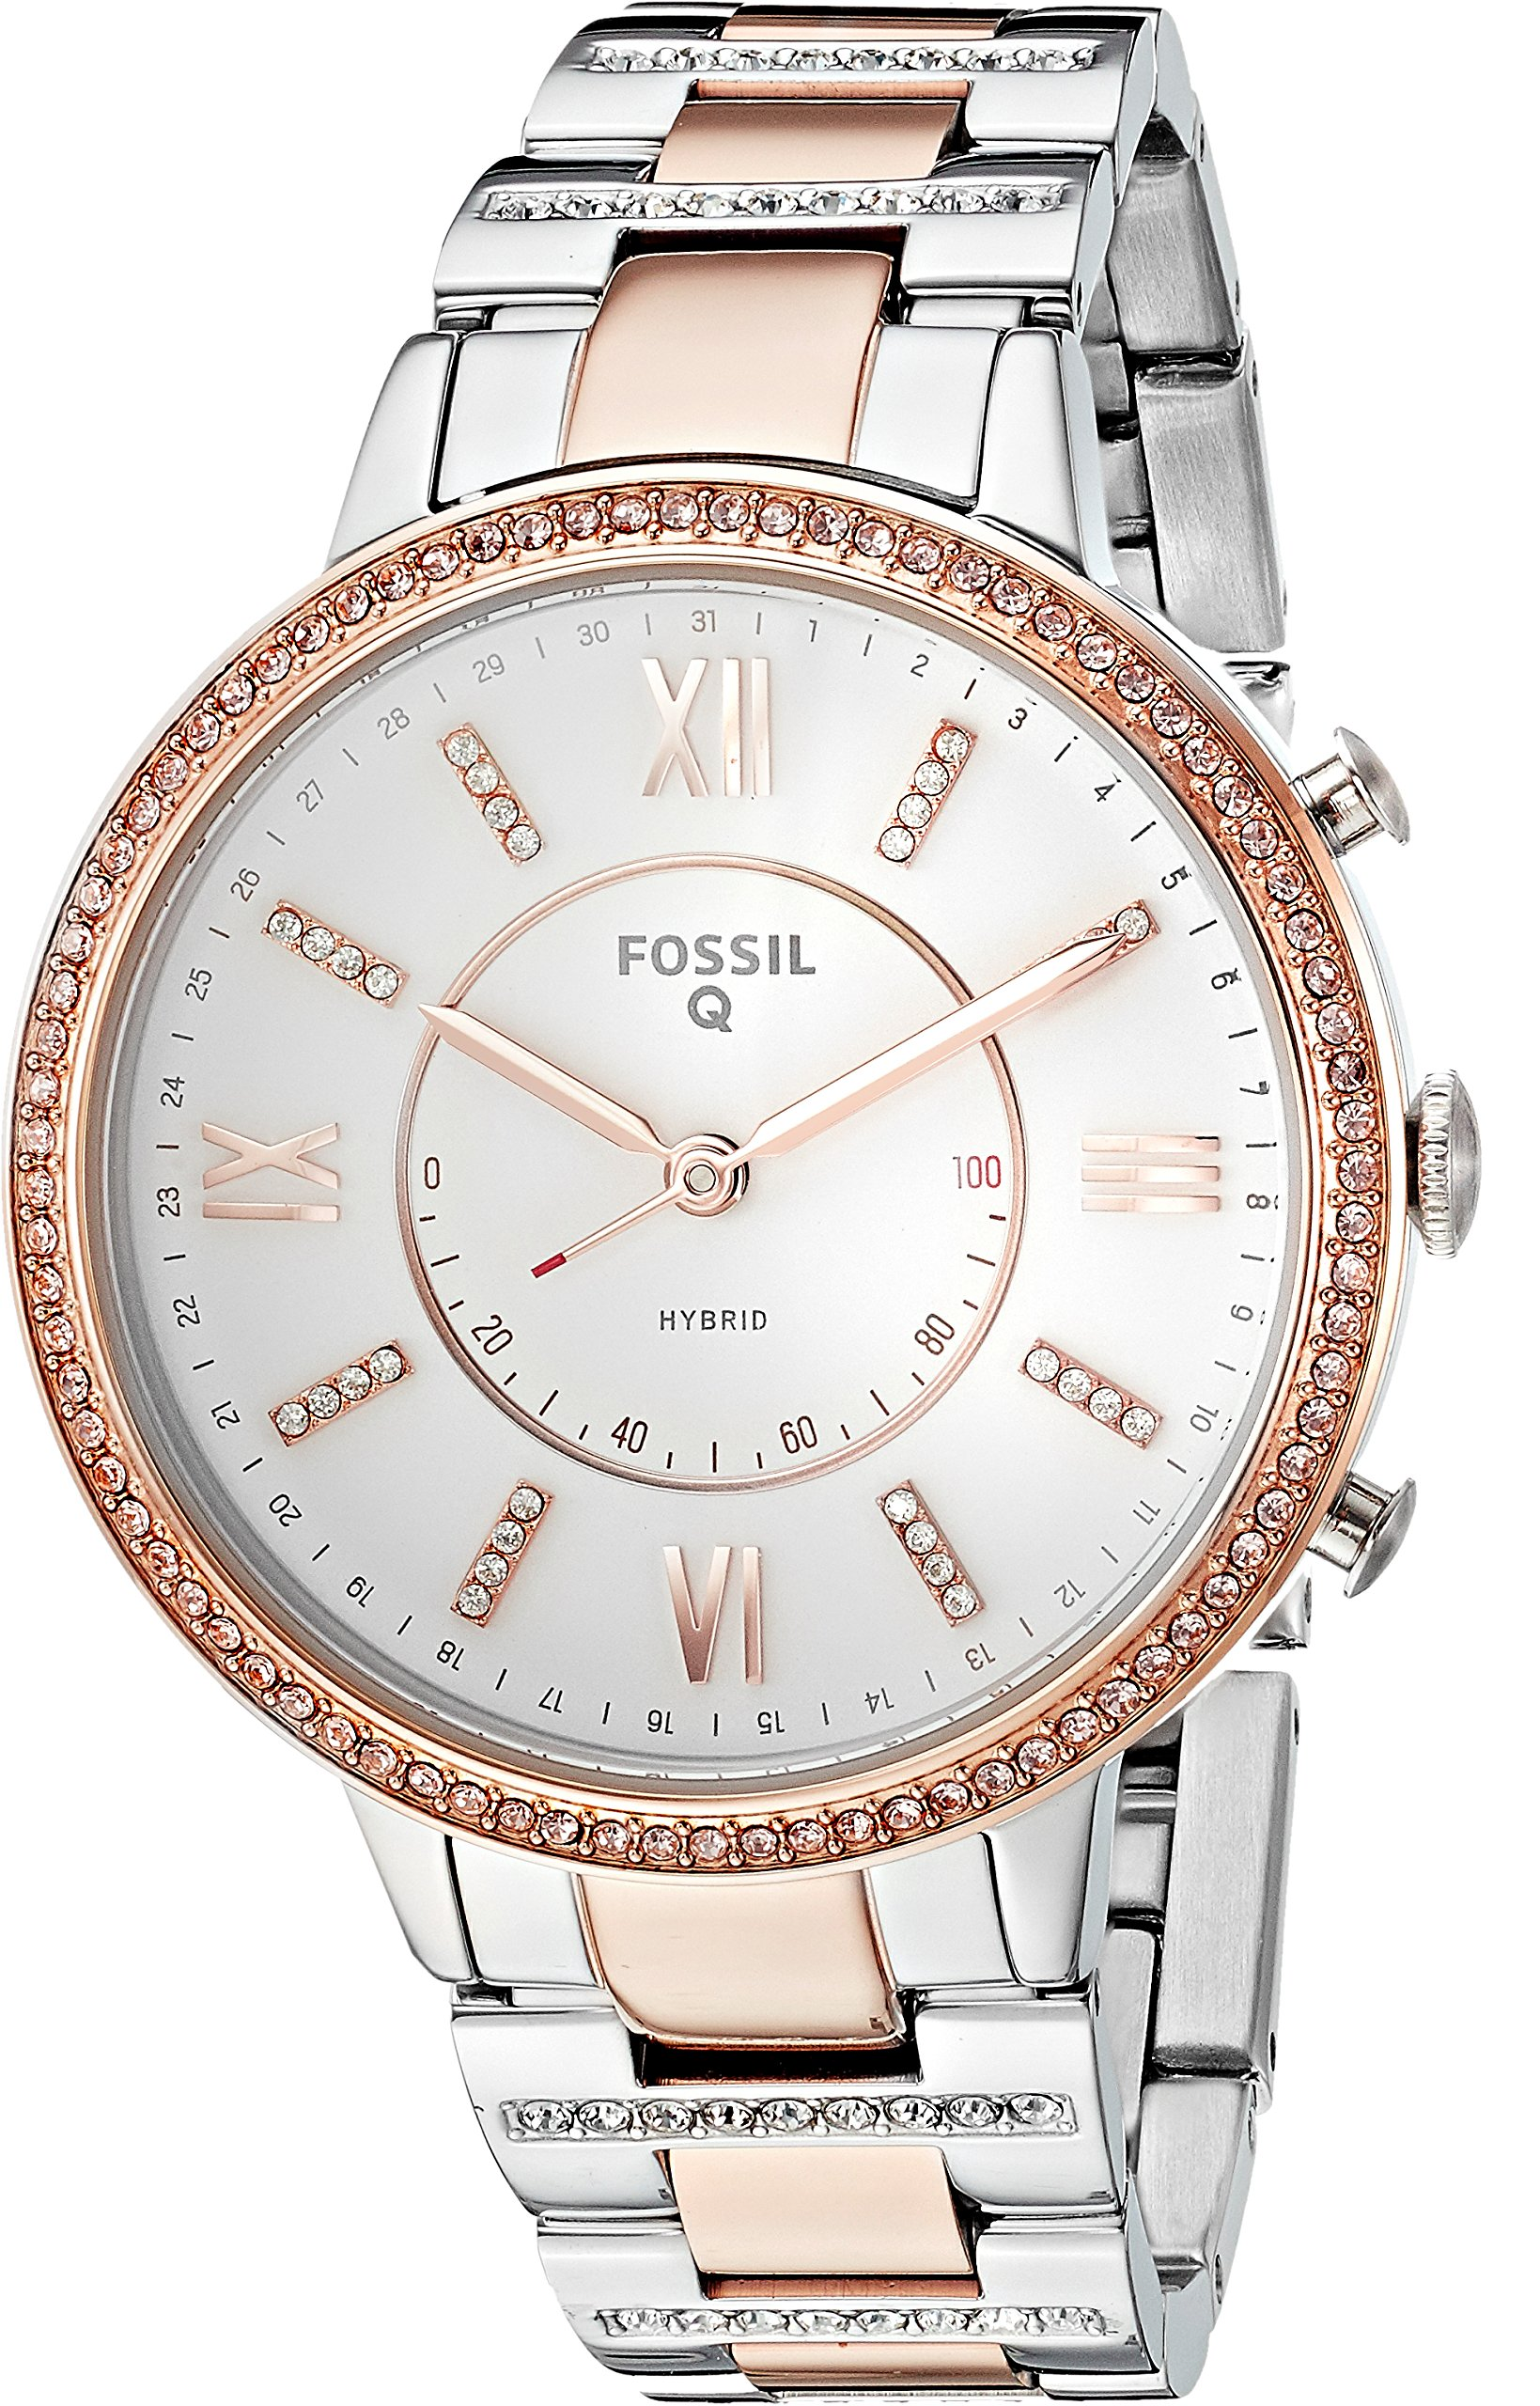 Fossil Q Women's Virginia Two-Tone Stainless Steel Hybrid Smartwatch, Color: Rose Gold-Tone, Silver-Tone (Model: FTW5011) by Fossil